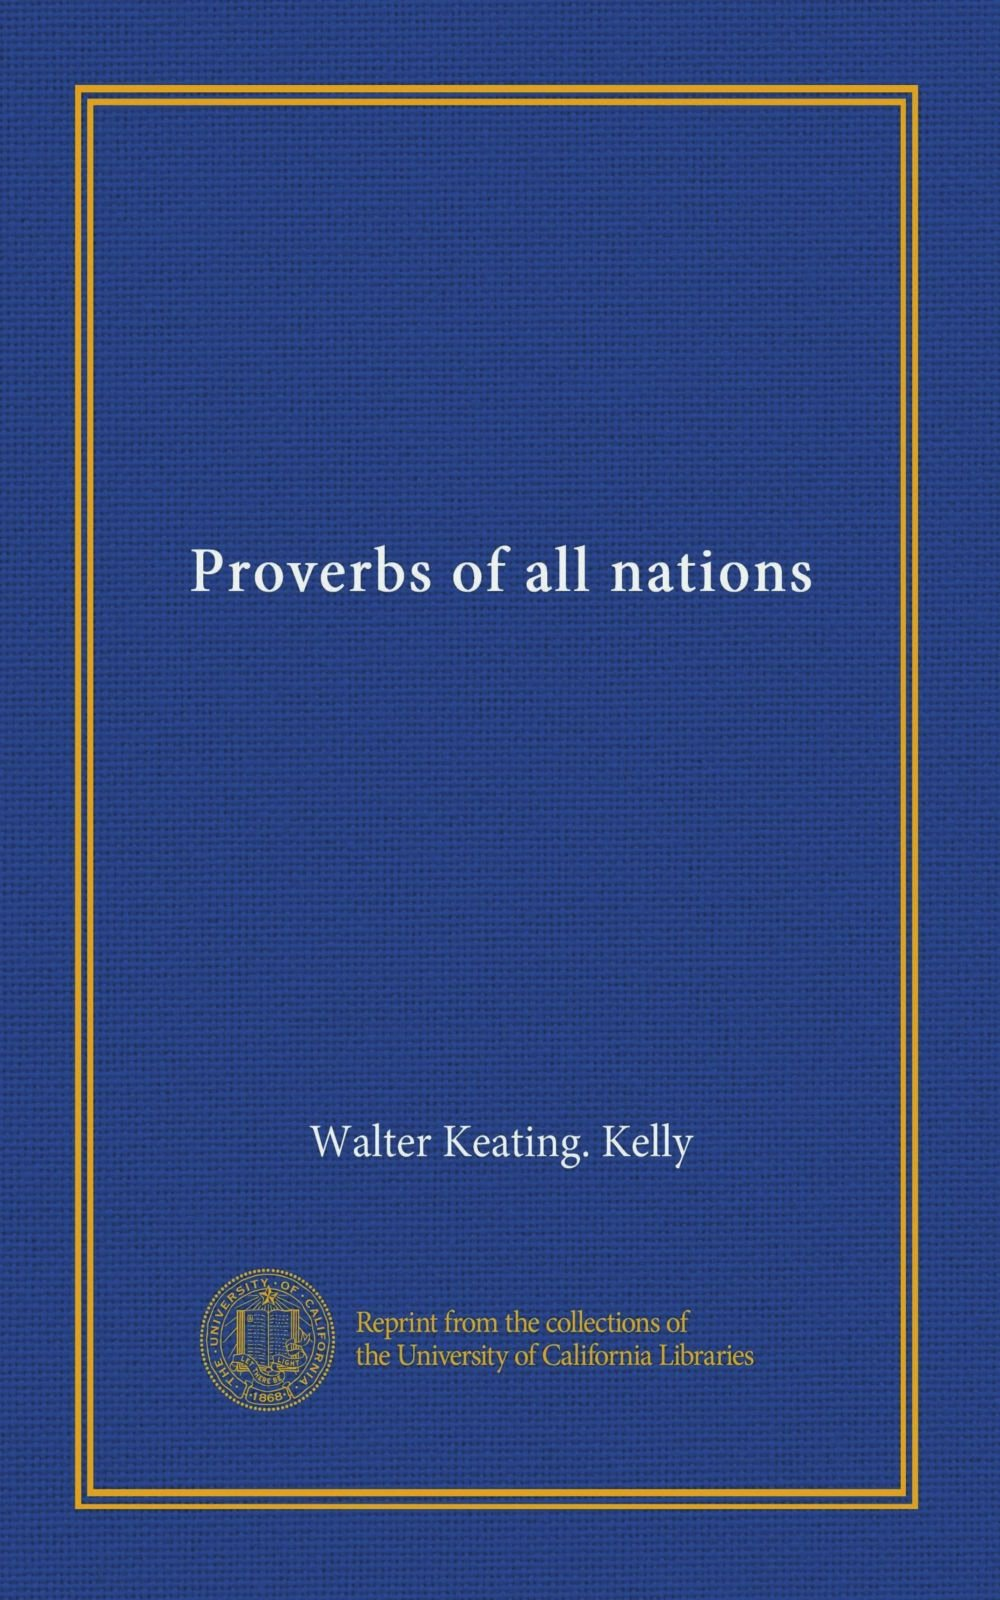 Download Proverbs of all nations ebook